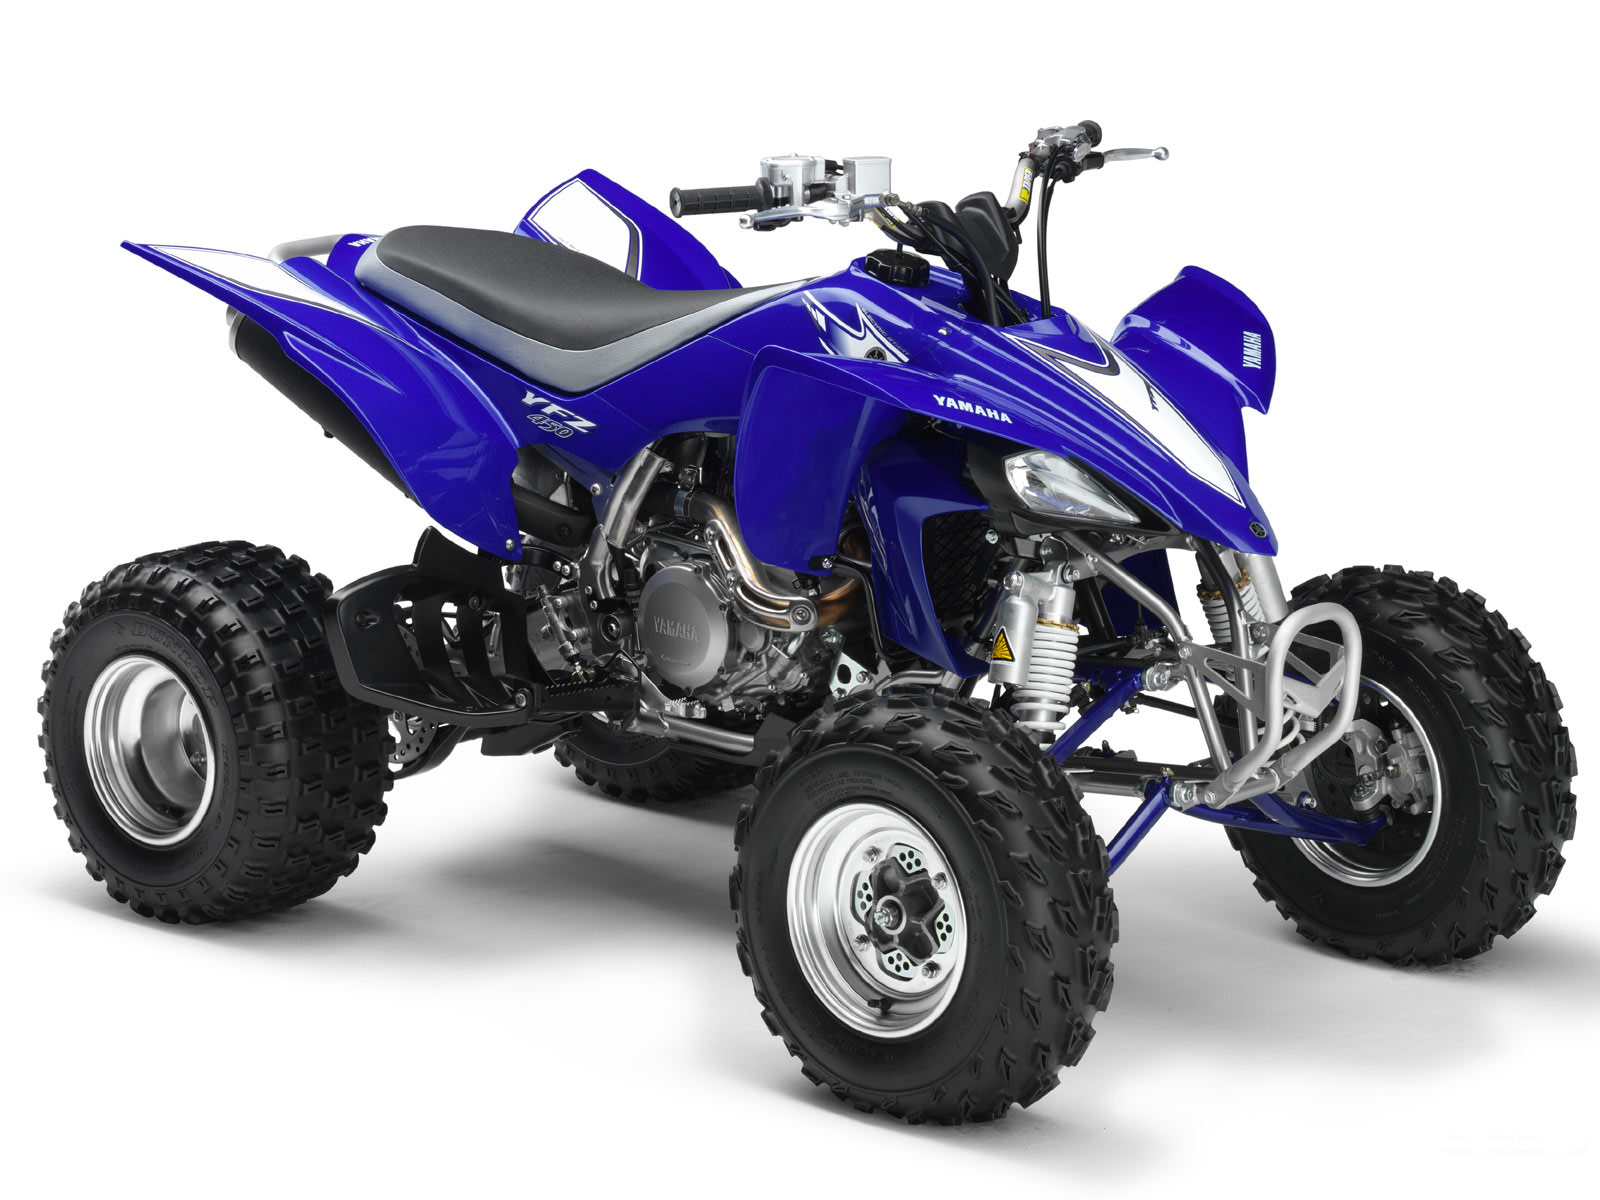 2007 yamaha yfz450 atv pictures review specifications. Black Bedroom Furniture Sets. Home Design Ideas